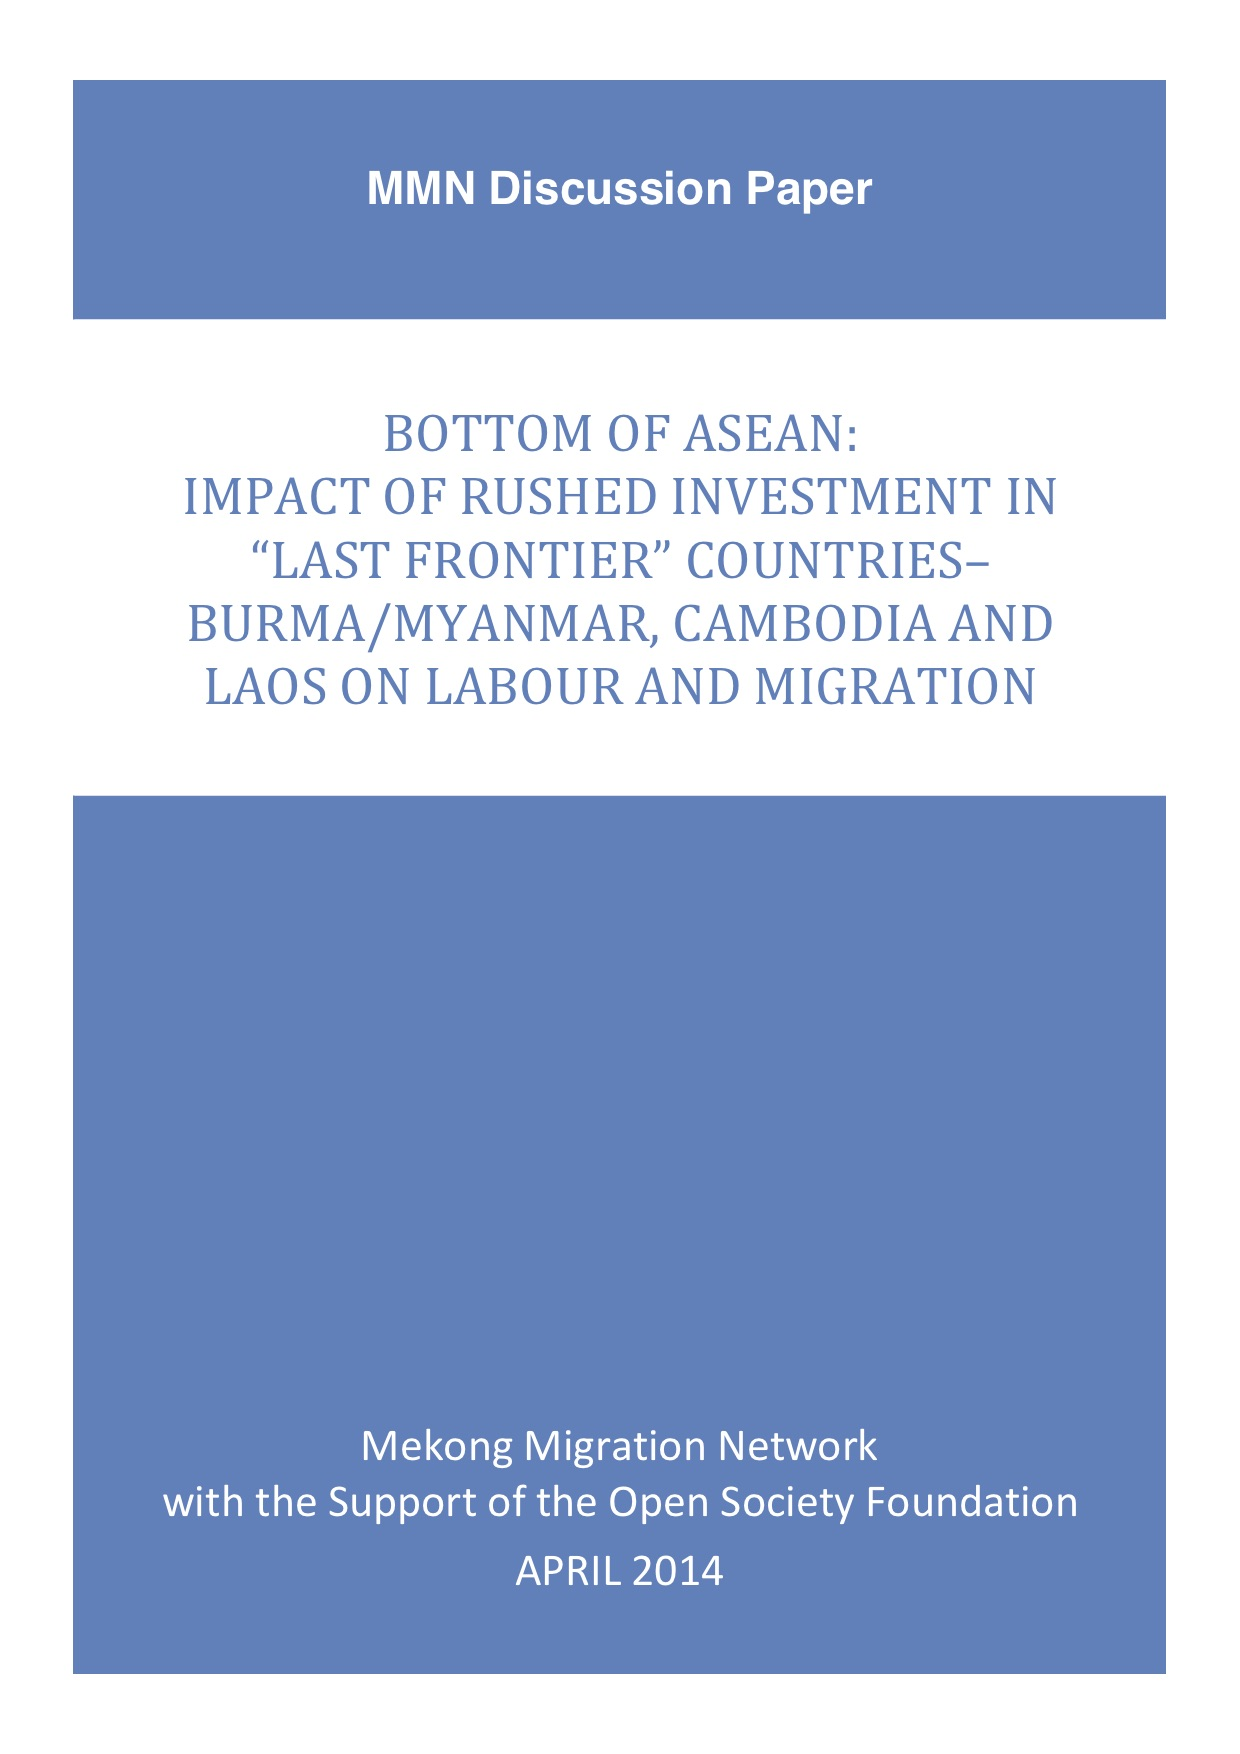 Bottom of ASEAN – Discussion paper-final